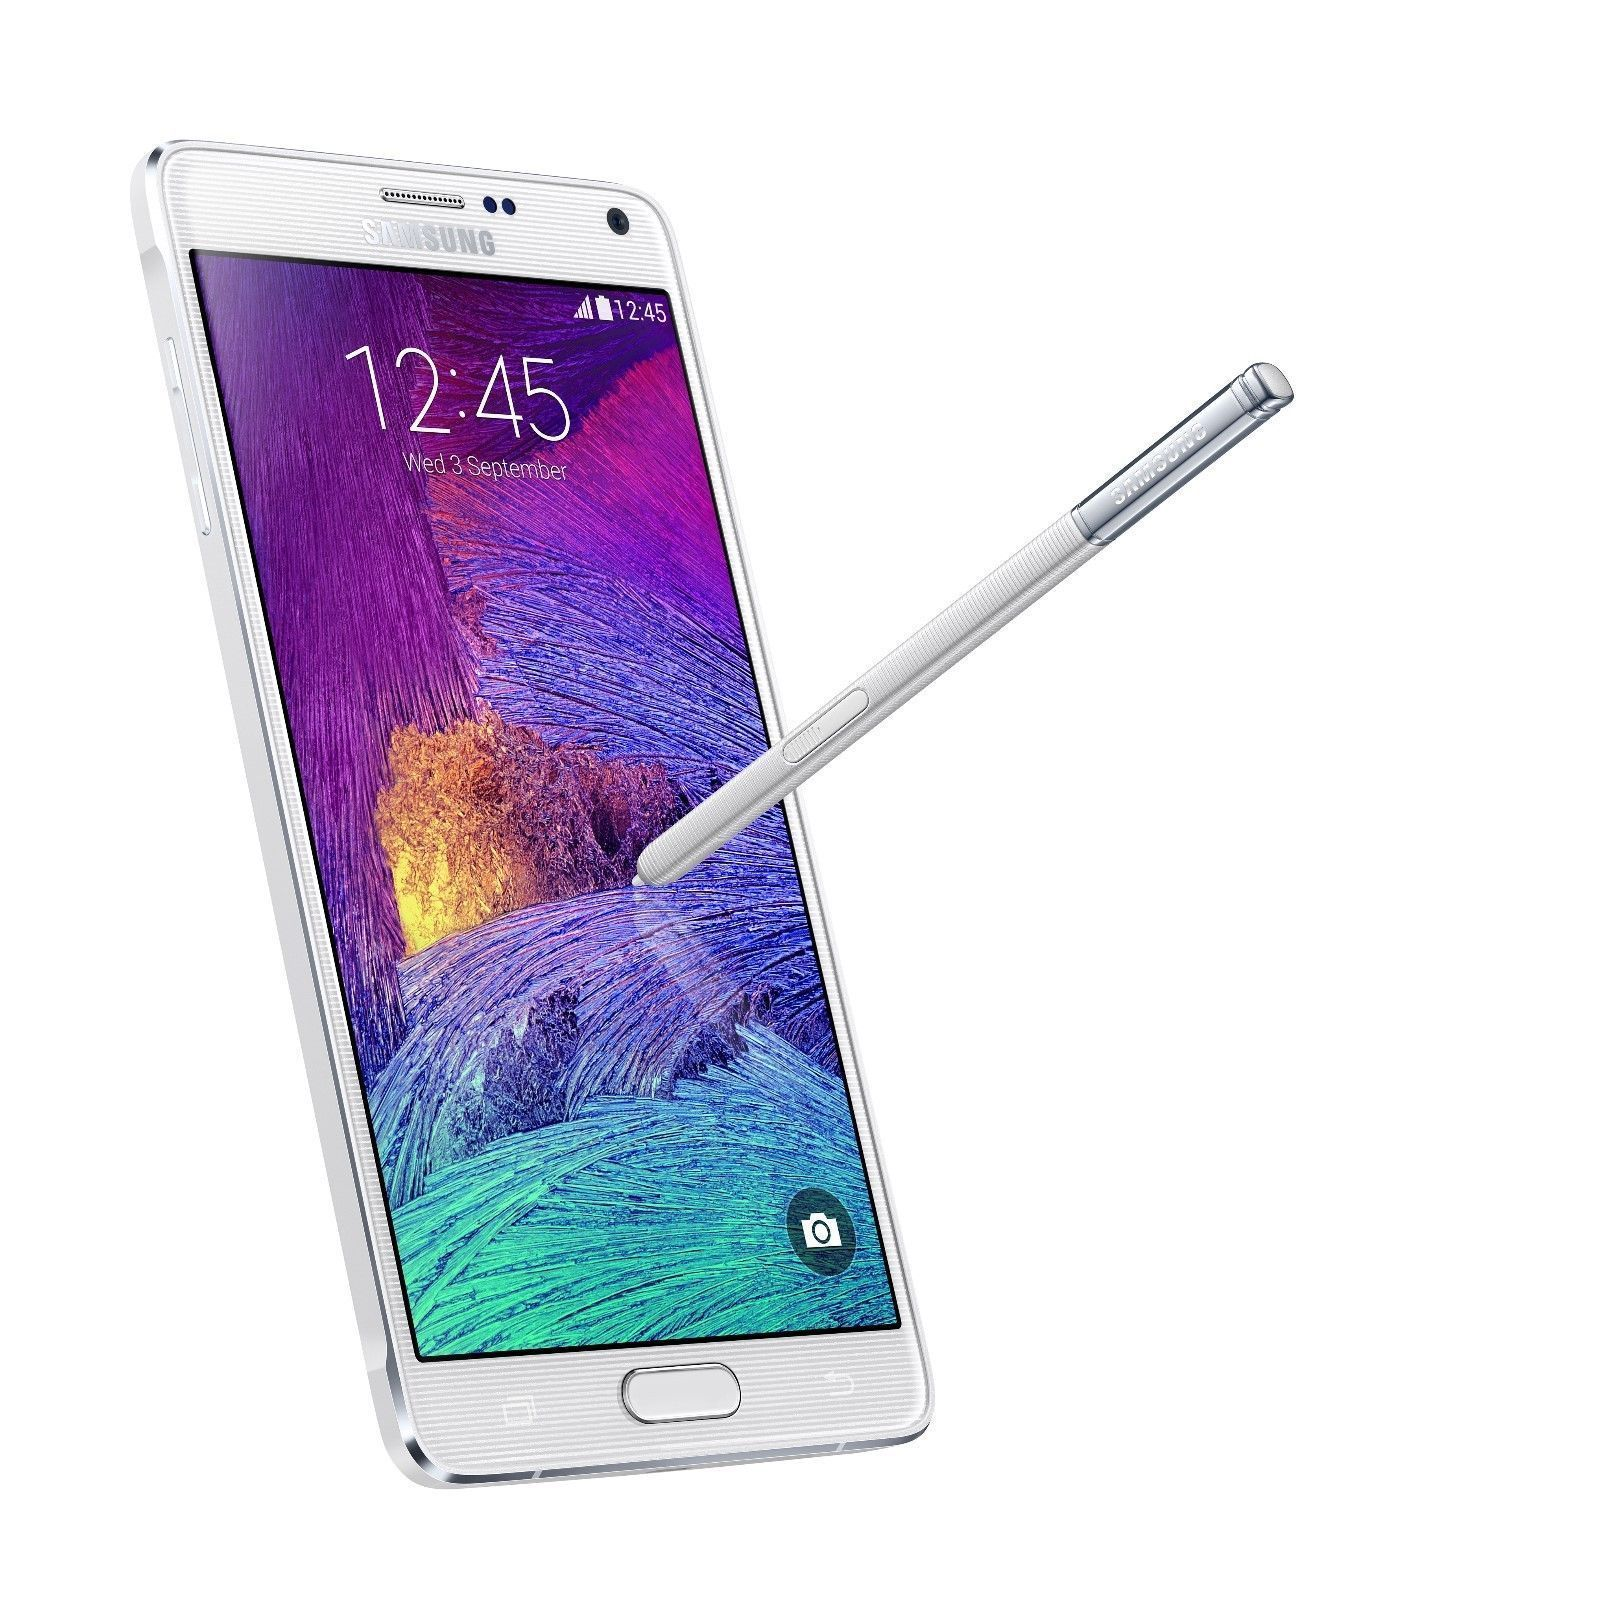 Samsung Galaxy Note 4 SM N910A 32 GB AT&T Mobile